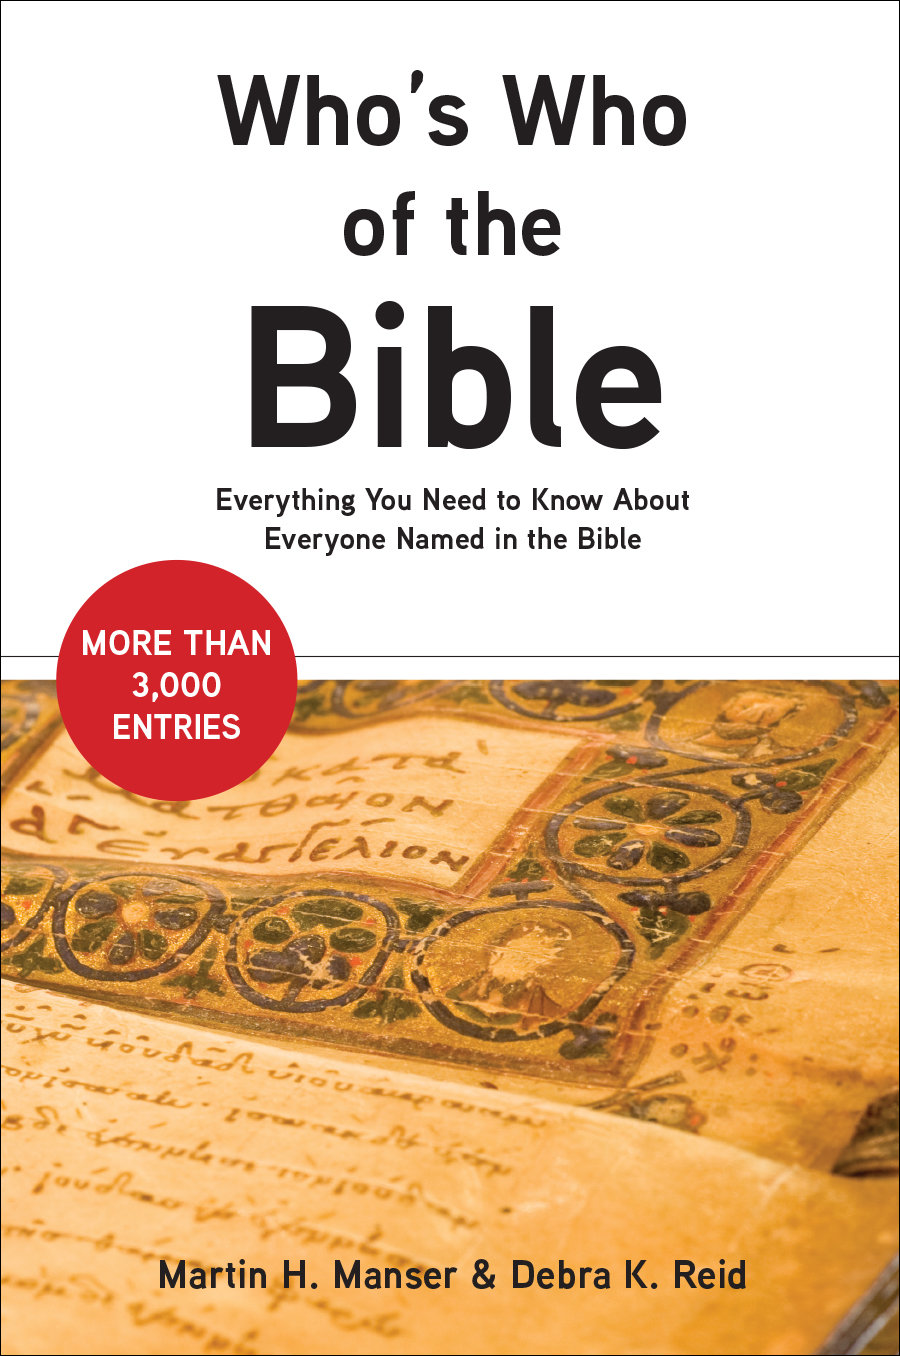 Who's Who of the Bible: Everything You Need to Know about Everyone Named in the Bible